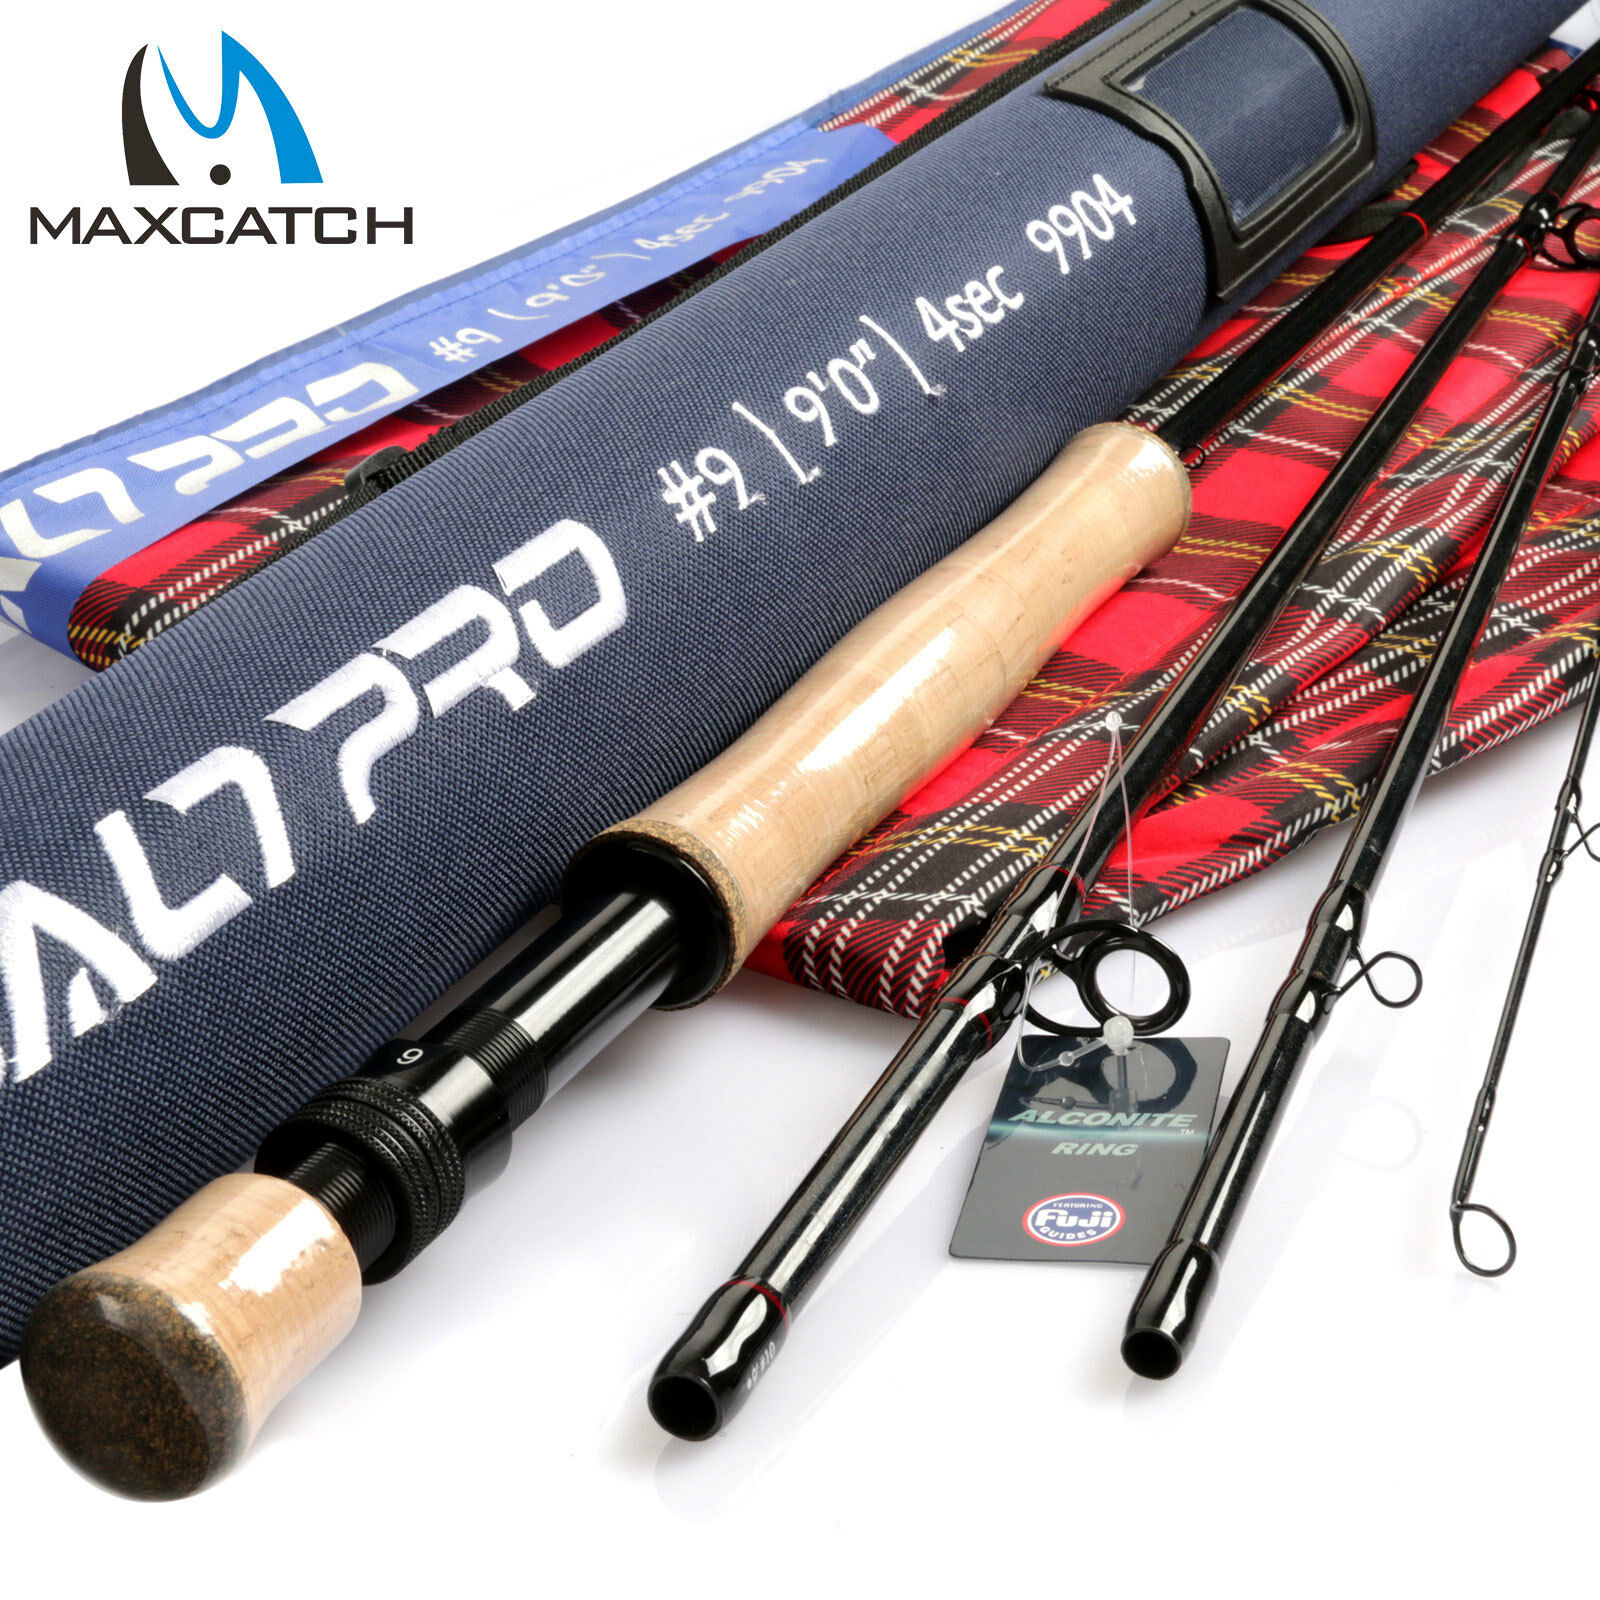 Maxcatch Saltwater Rod 8 9 10wt 9ft Graphite IM10 Fast Action Fly Fishing & Tube